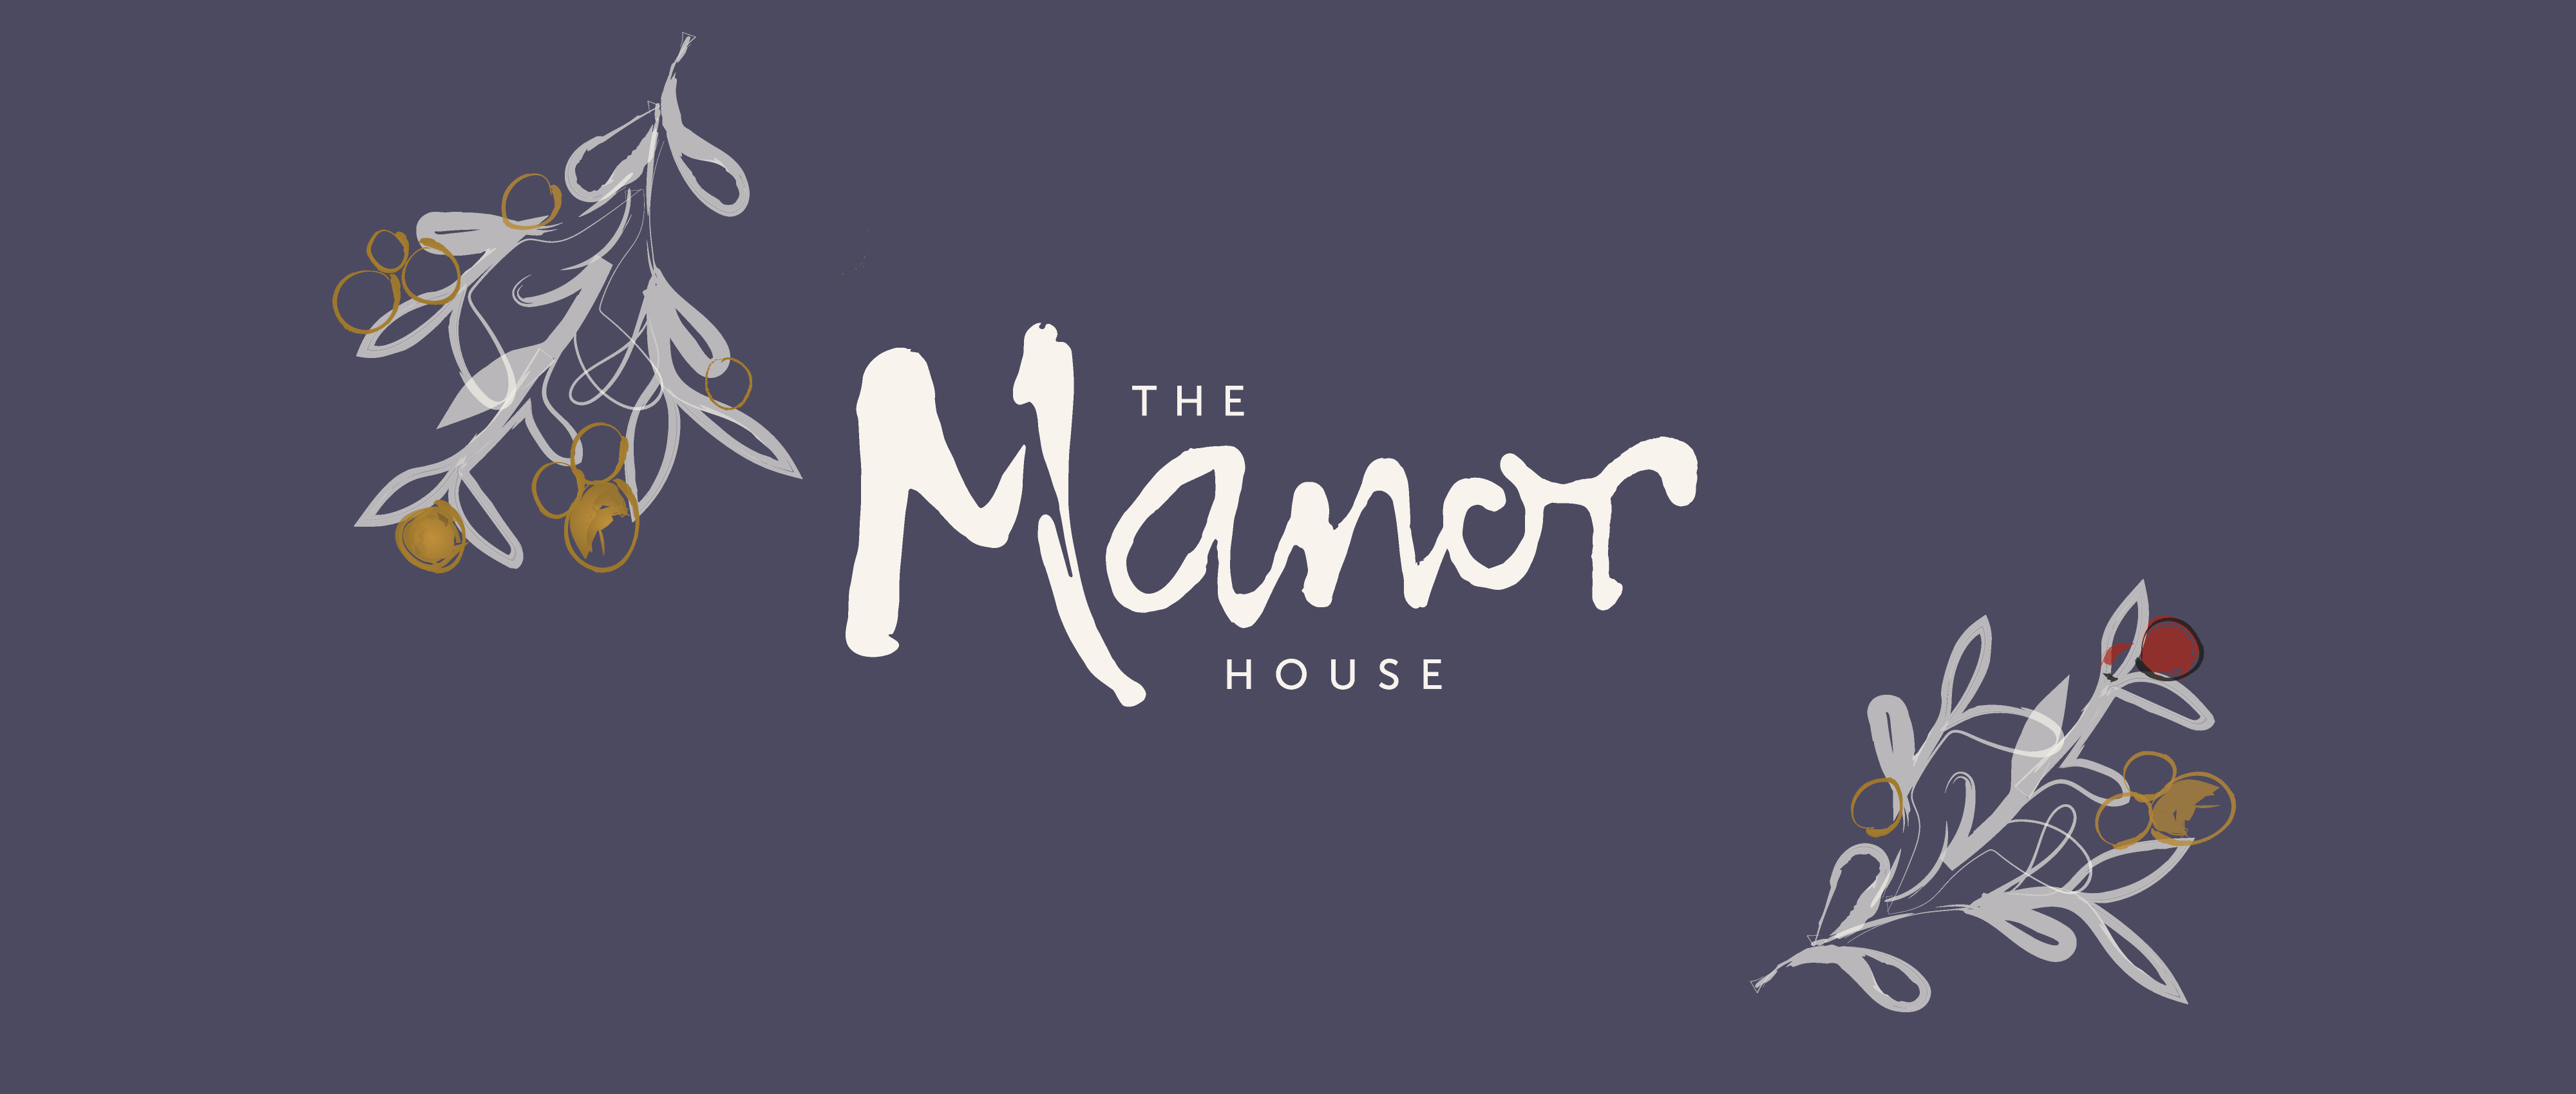 Brand identity and illustrations for The Manor House pub restaurant and bed and breakfast in Quorn.